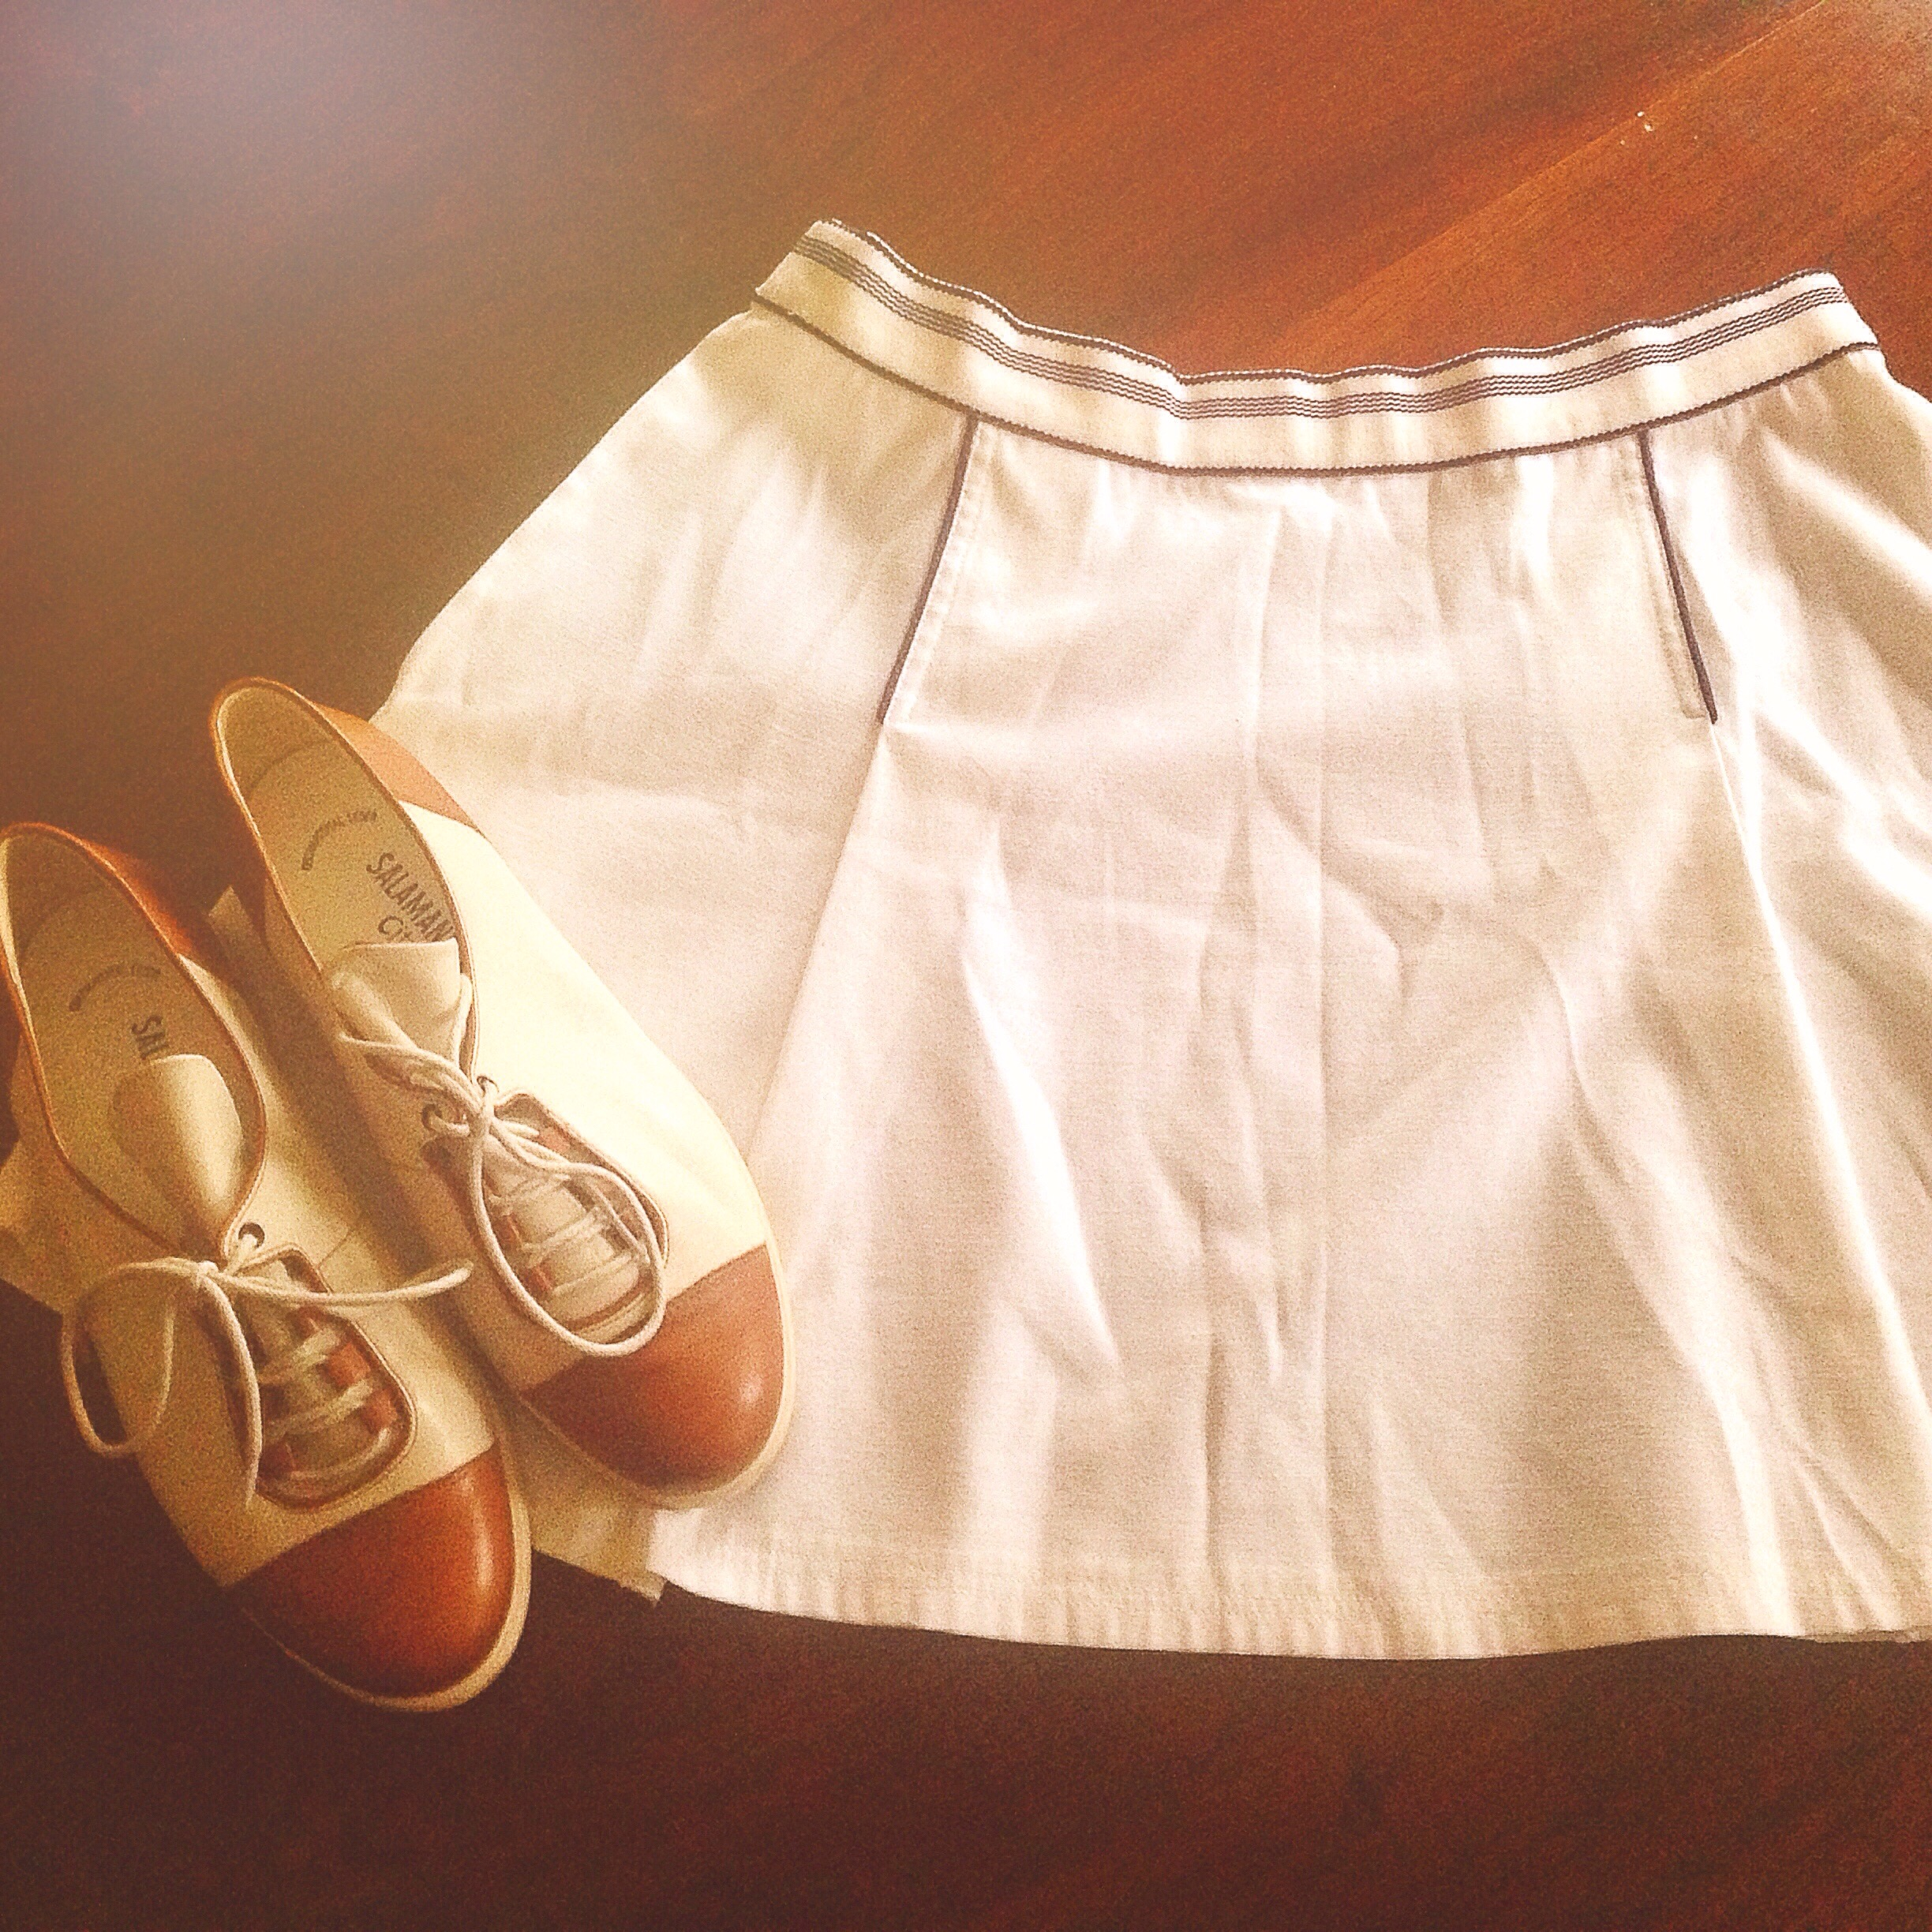 vintage brogues and white skirt from blackbird vintage in berlin